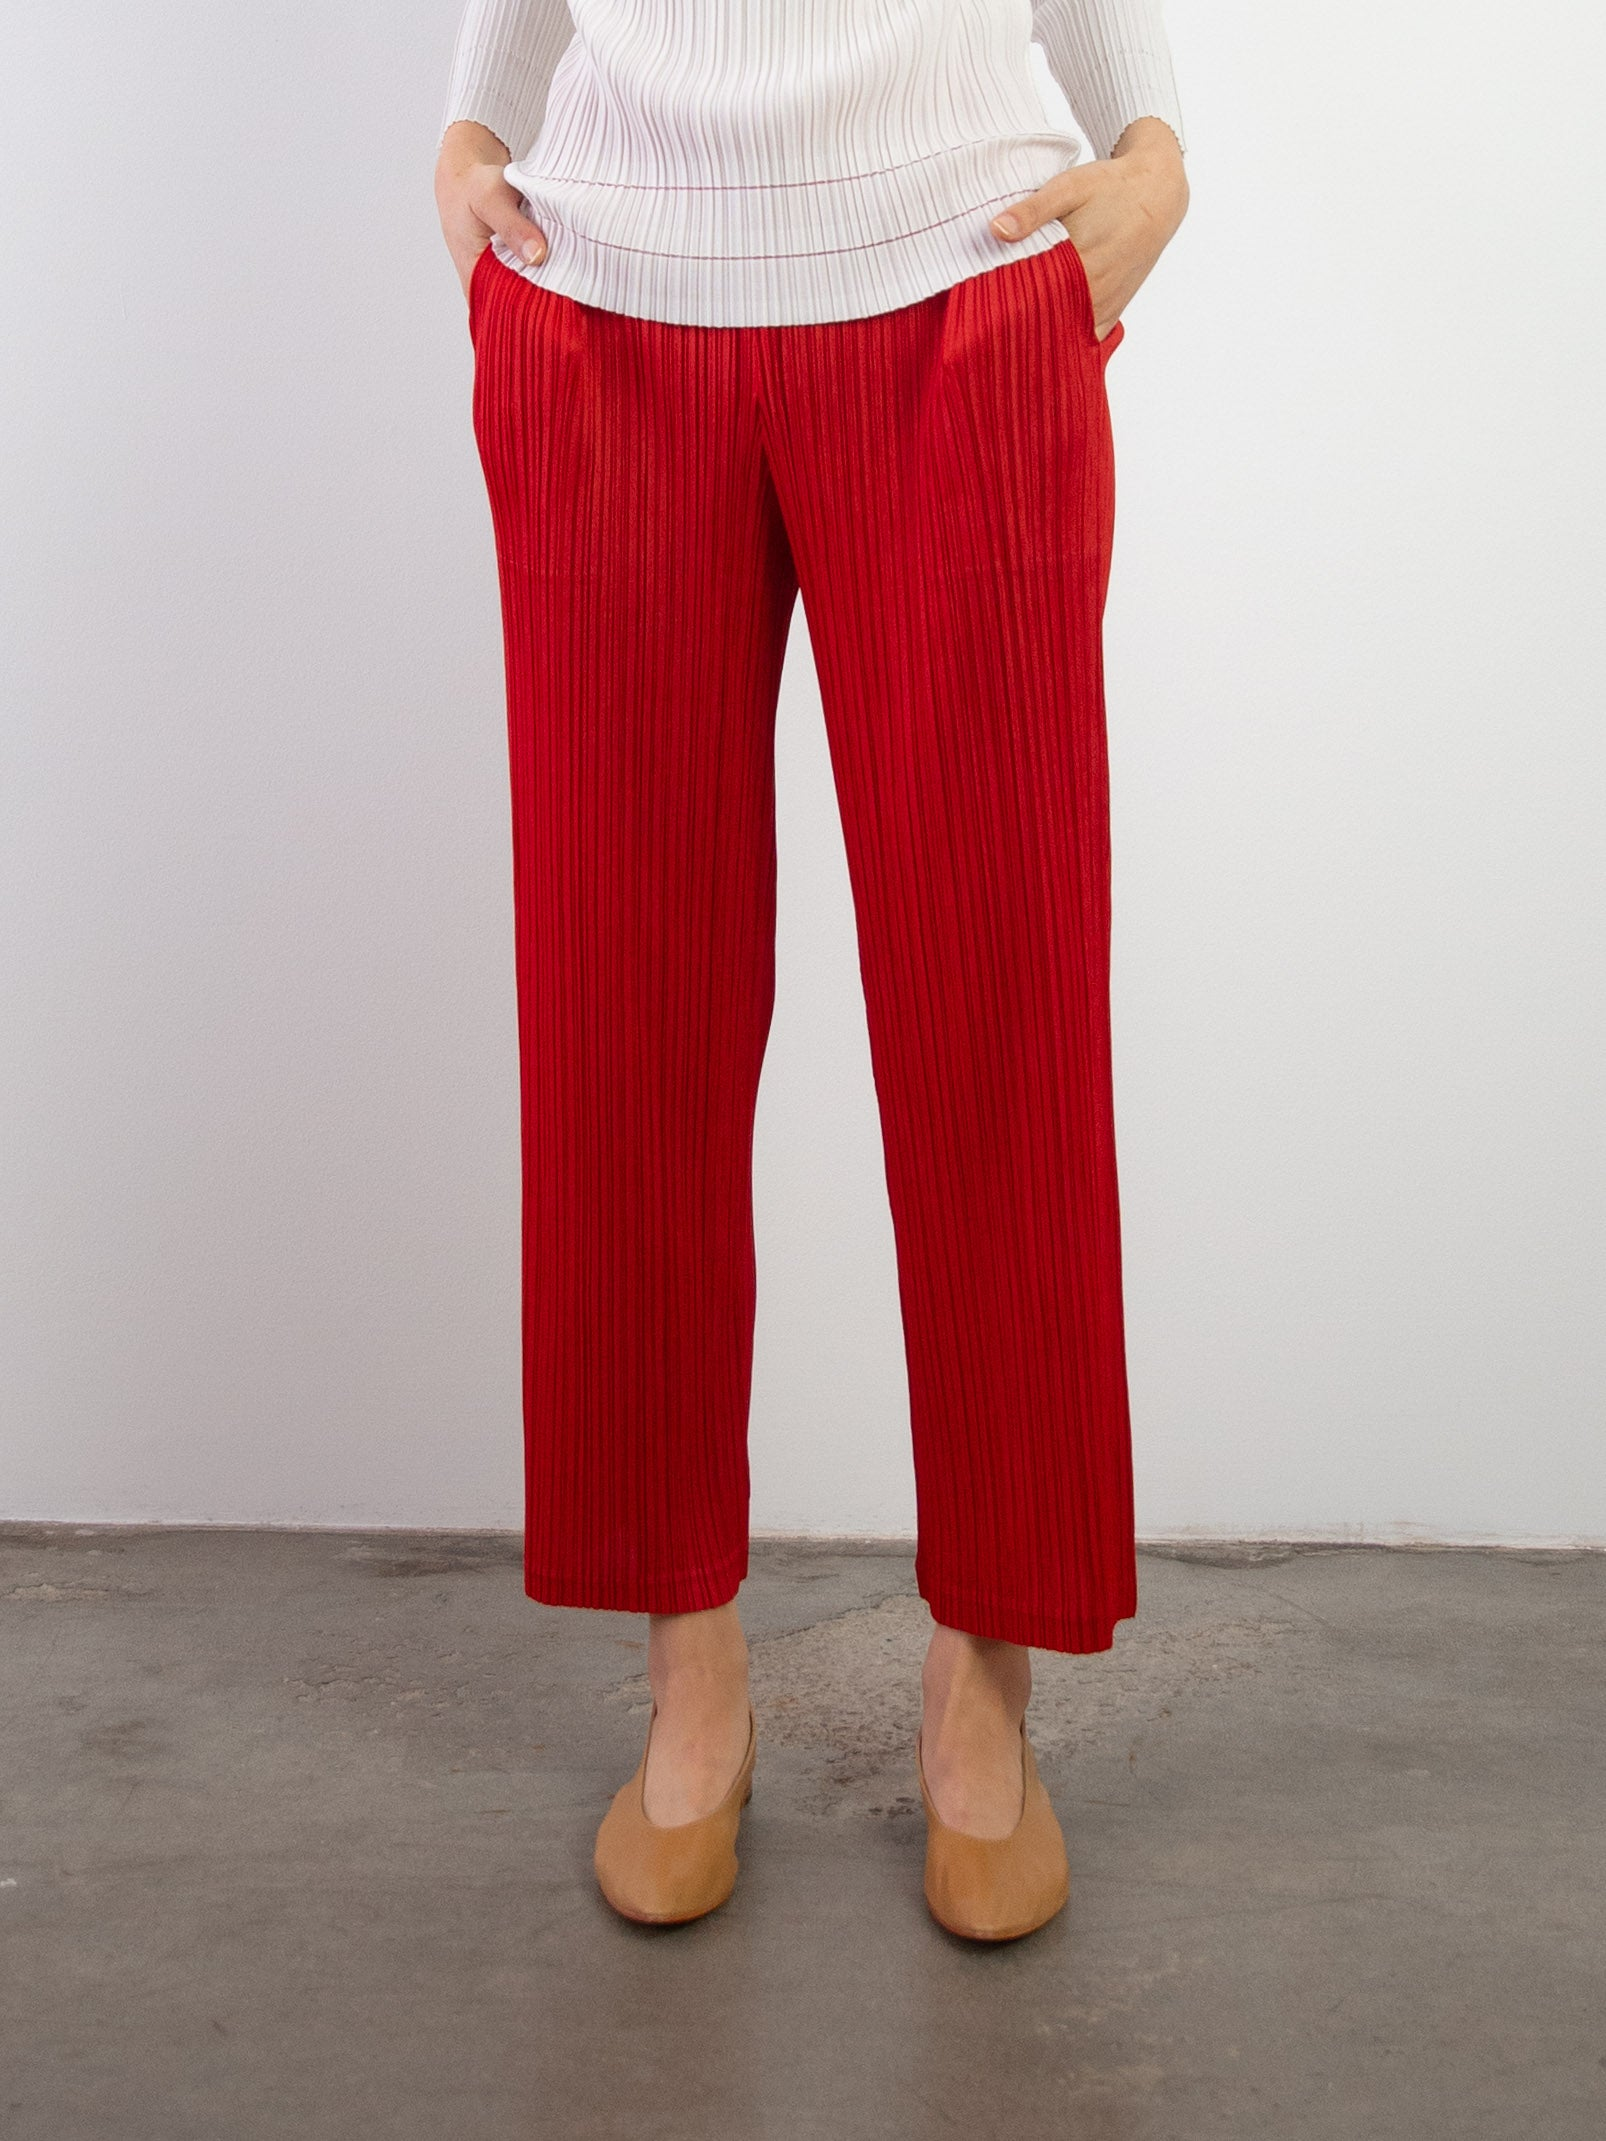 Thicker Bottoms II Straight Pants - Red